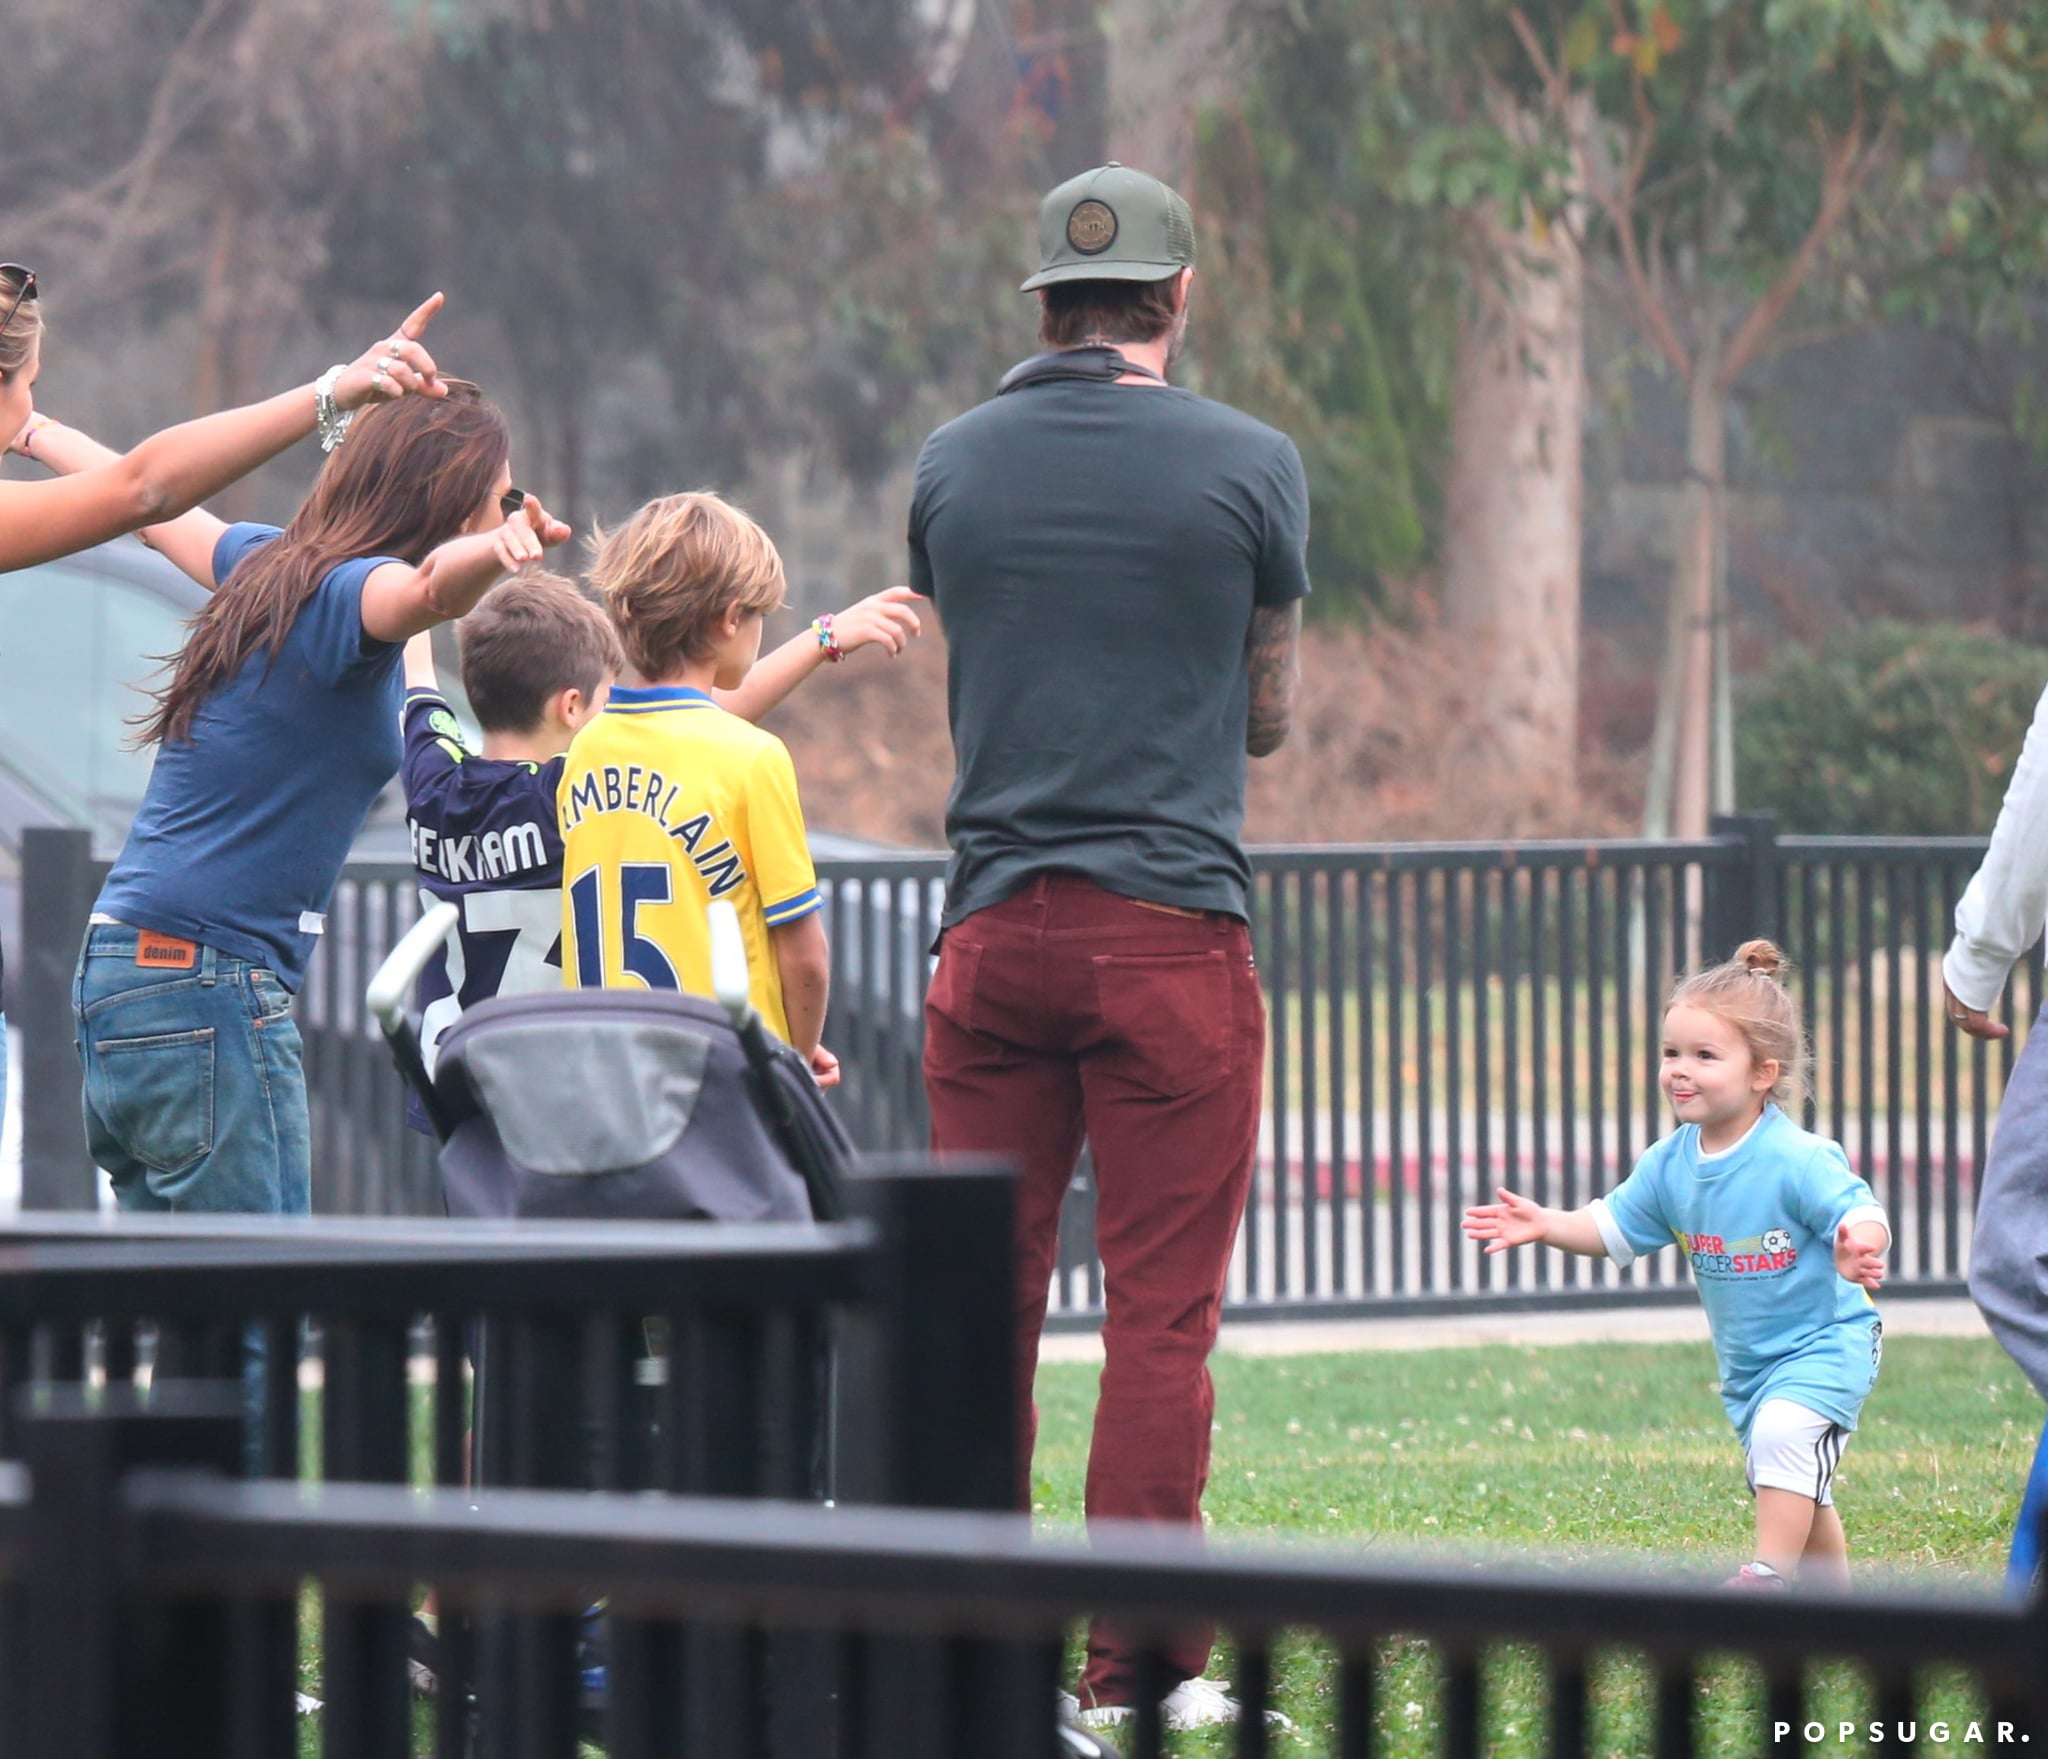 Harper Beckham was all smiles after scoring a soccer goal in front of her family.